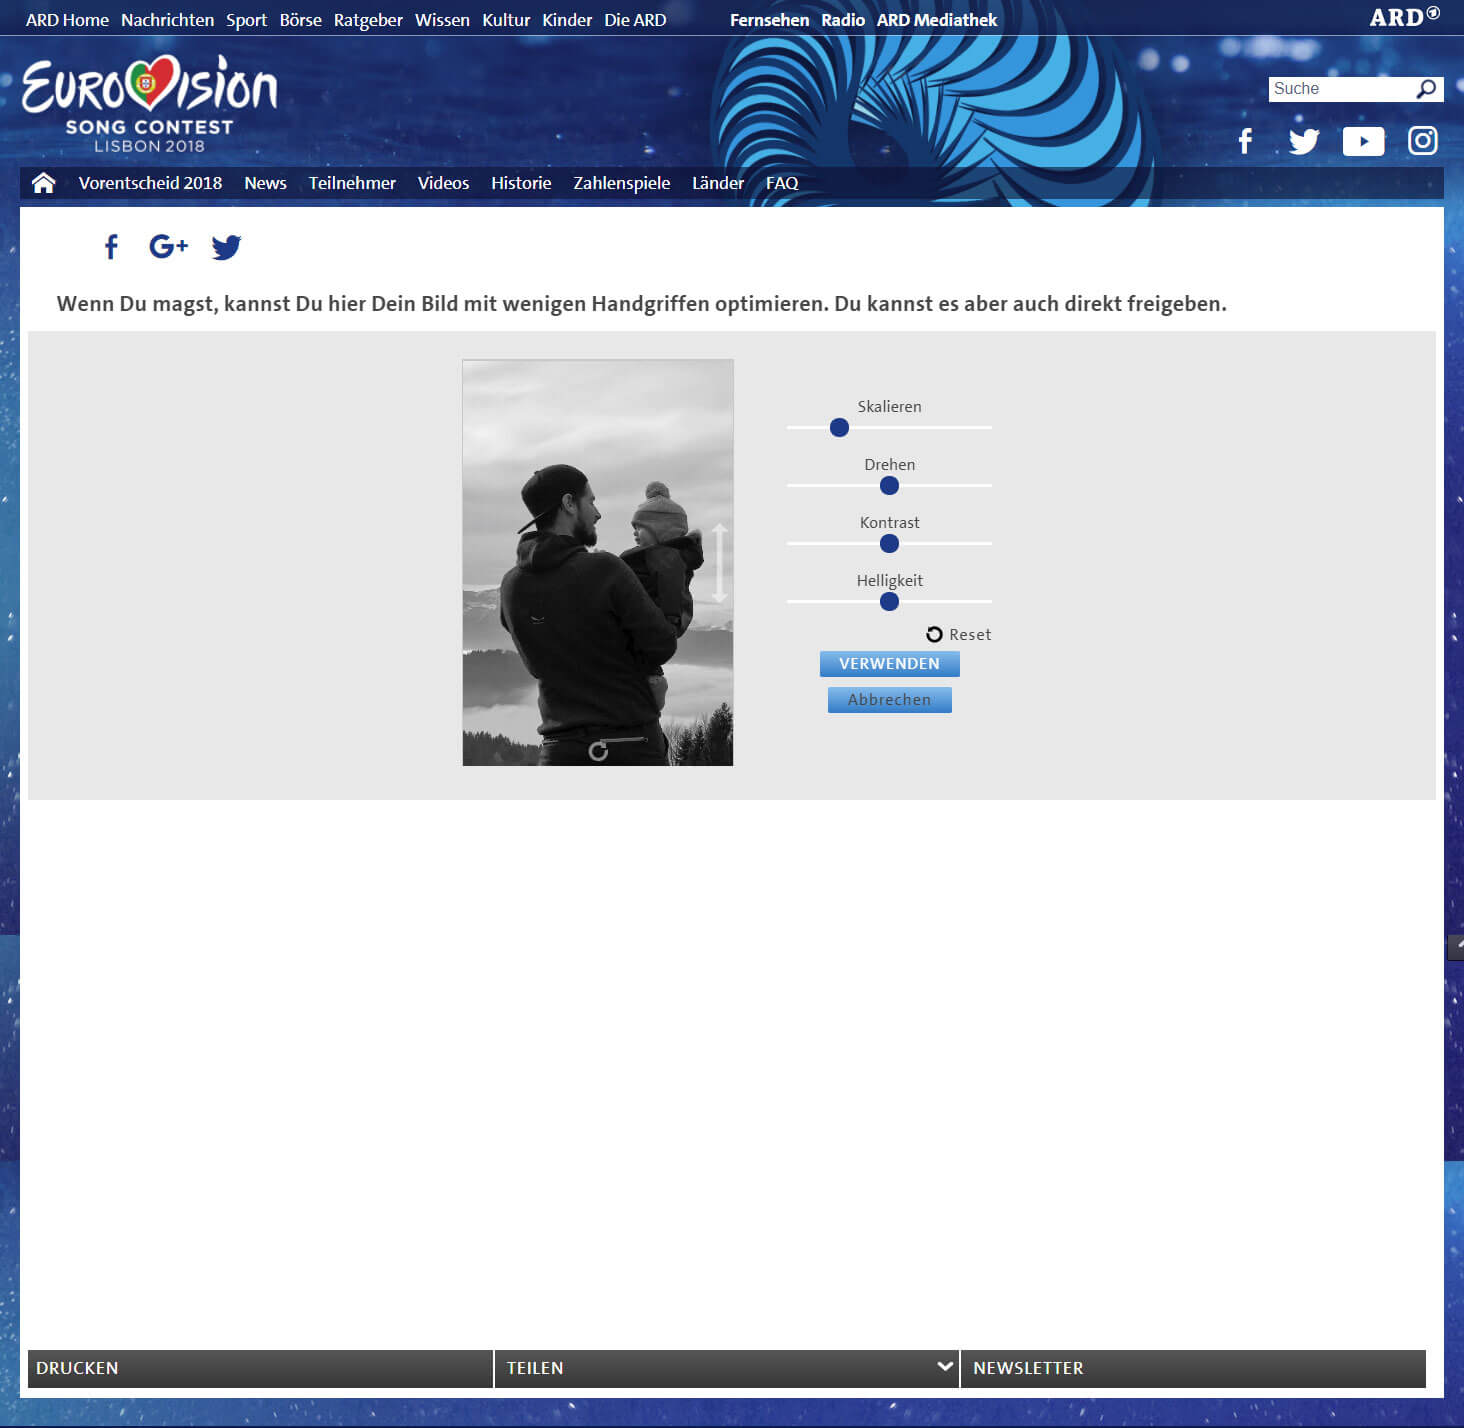 Video Personalisierung für Eurovision Song Contest Interface 02